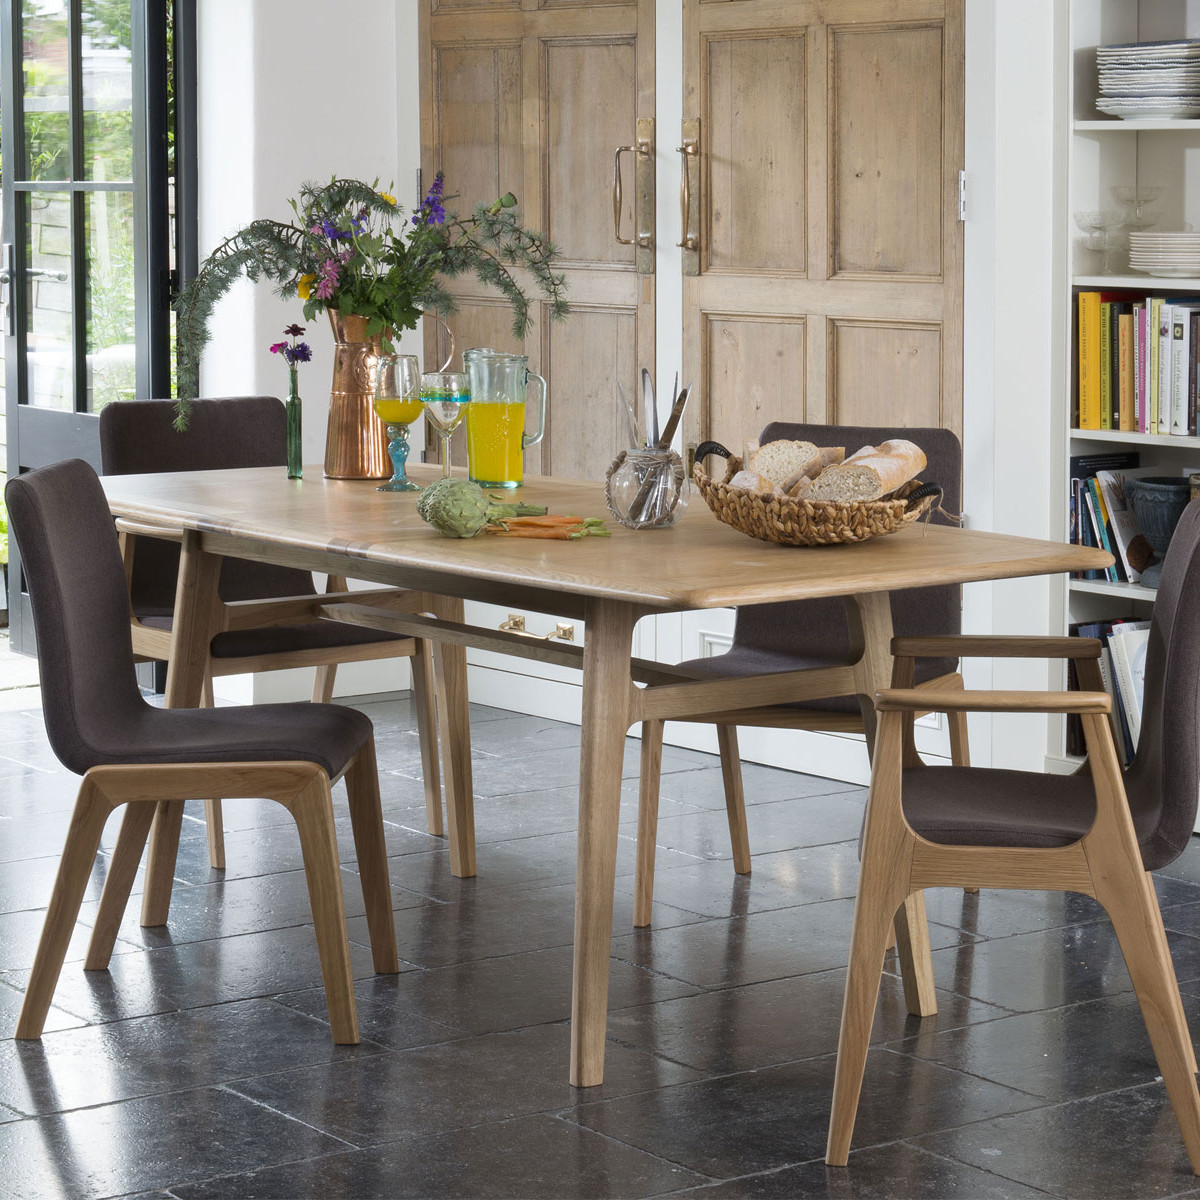 About Willis Gambier Outlet Discount Quality Furniture